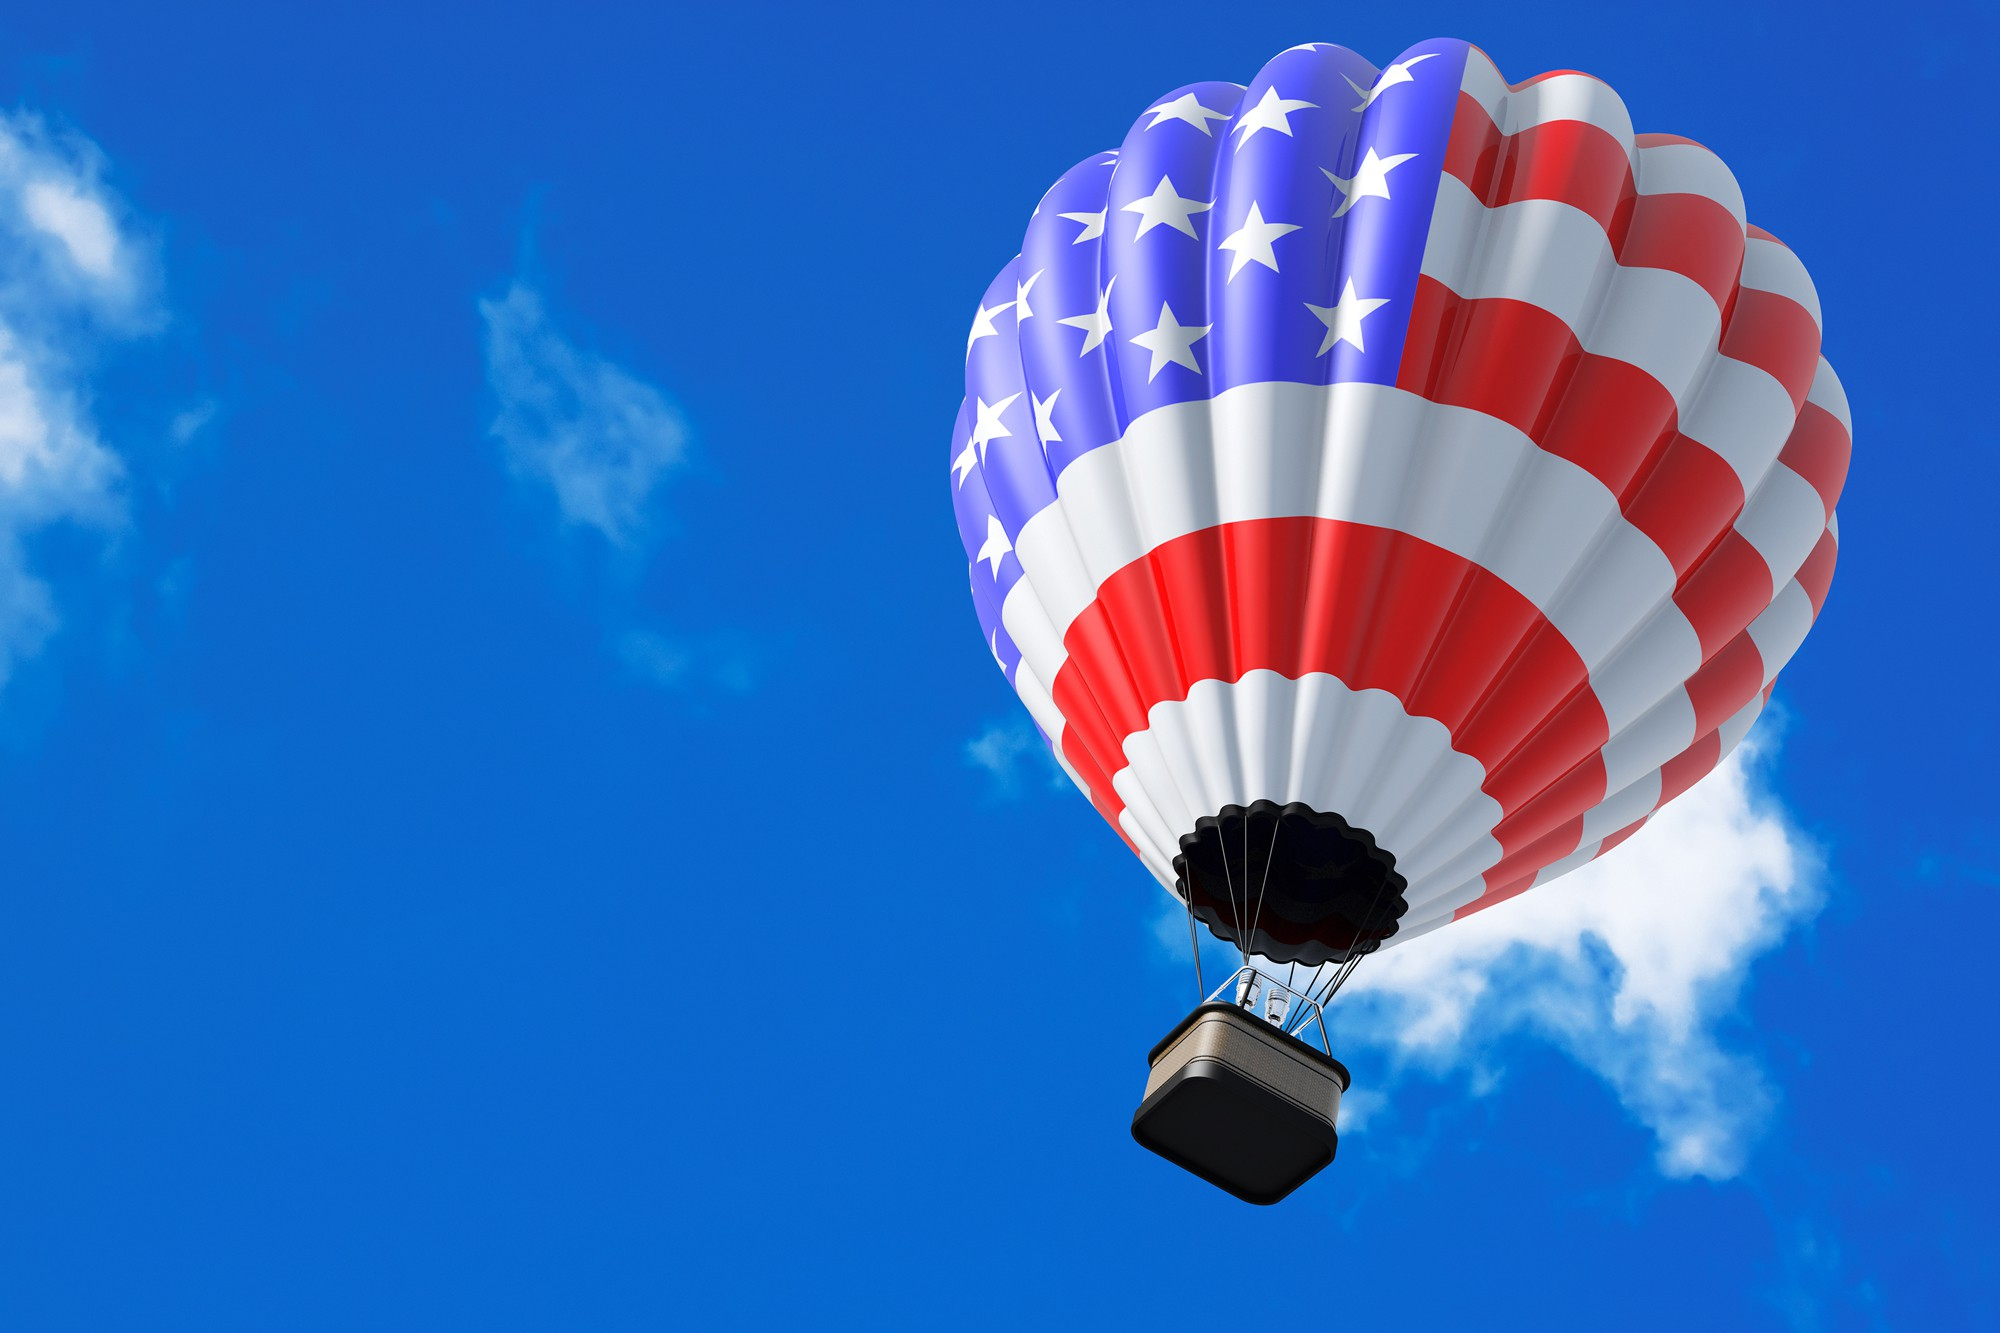 fourth_of_july_hot_air_balloonfest-image_courtesy_of_shutterstock.com-doomu